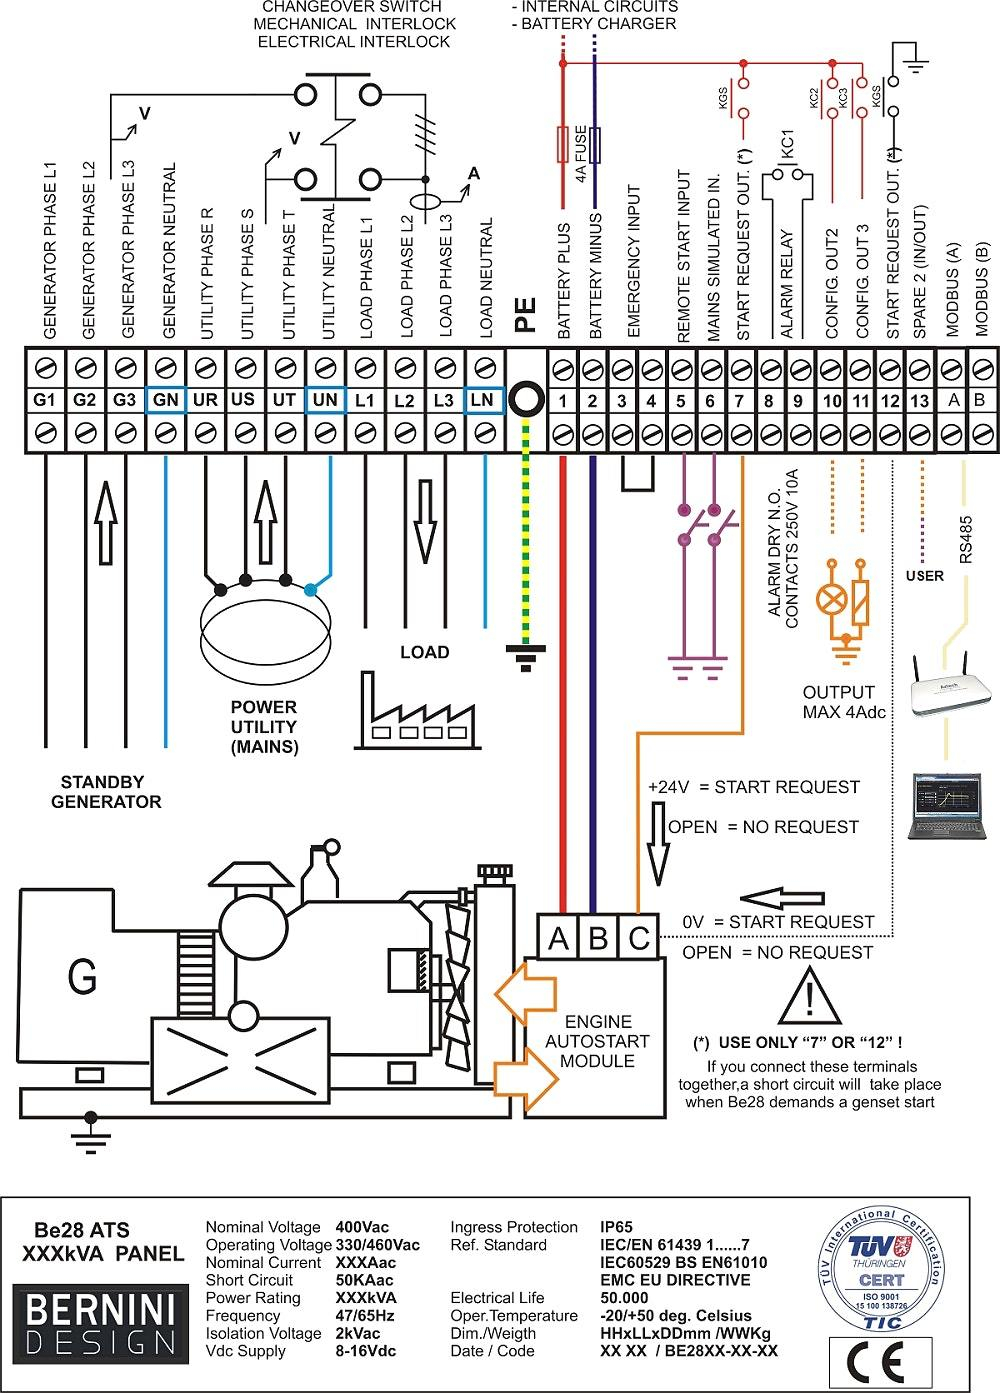 asco transfer switch wiring diagram Collection-Automatic Transfer Switch Wiring Diagram Free Throughout 12-d